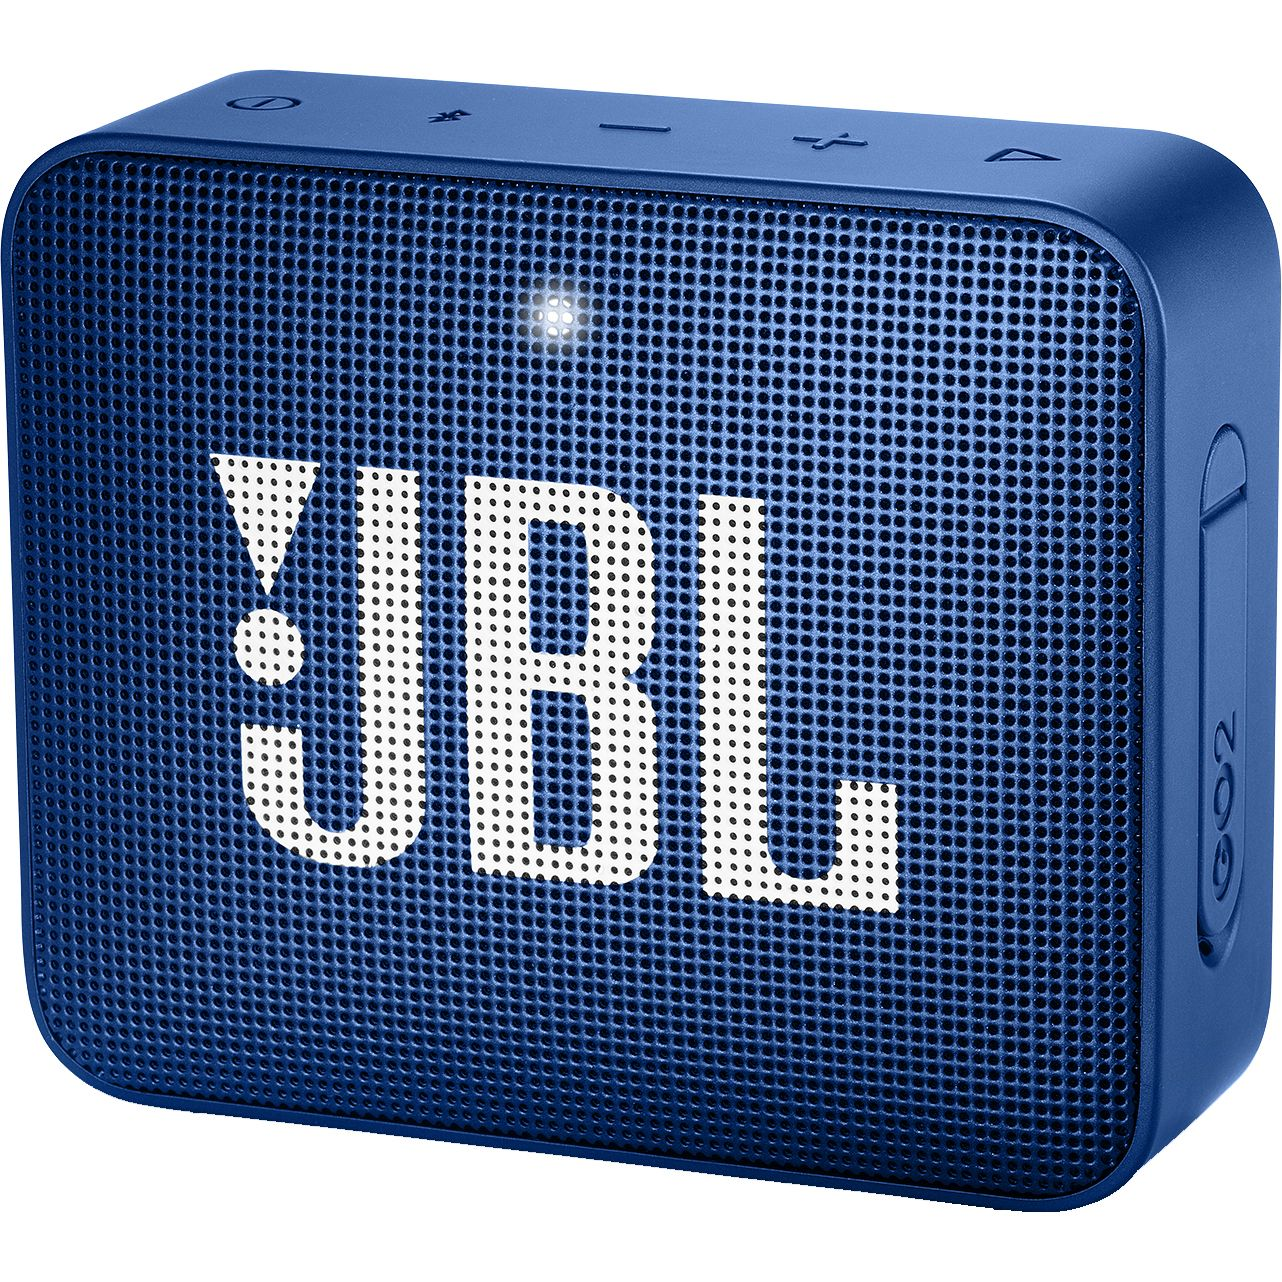 Boxa portabila JBL Go 2, Wireless, Bluetooth, IPX7 Waterproof, Blue